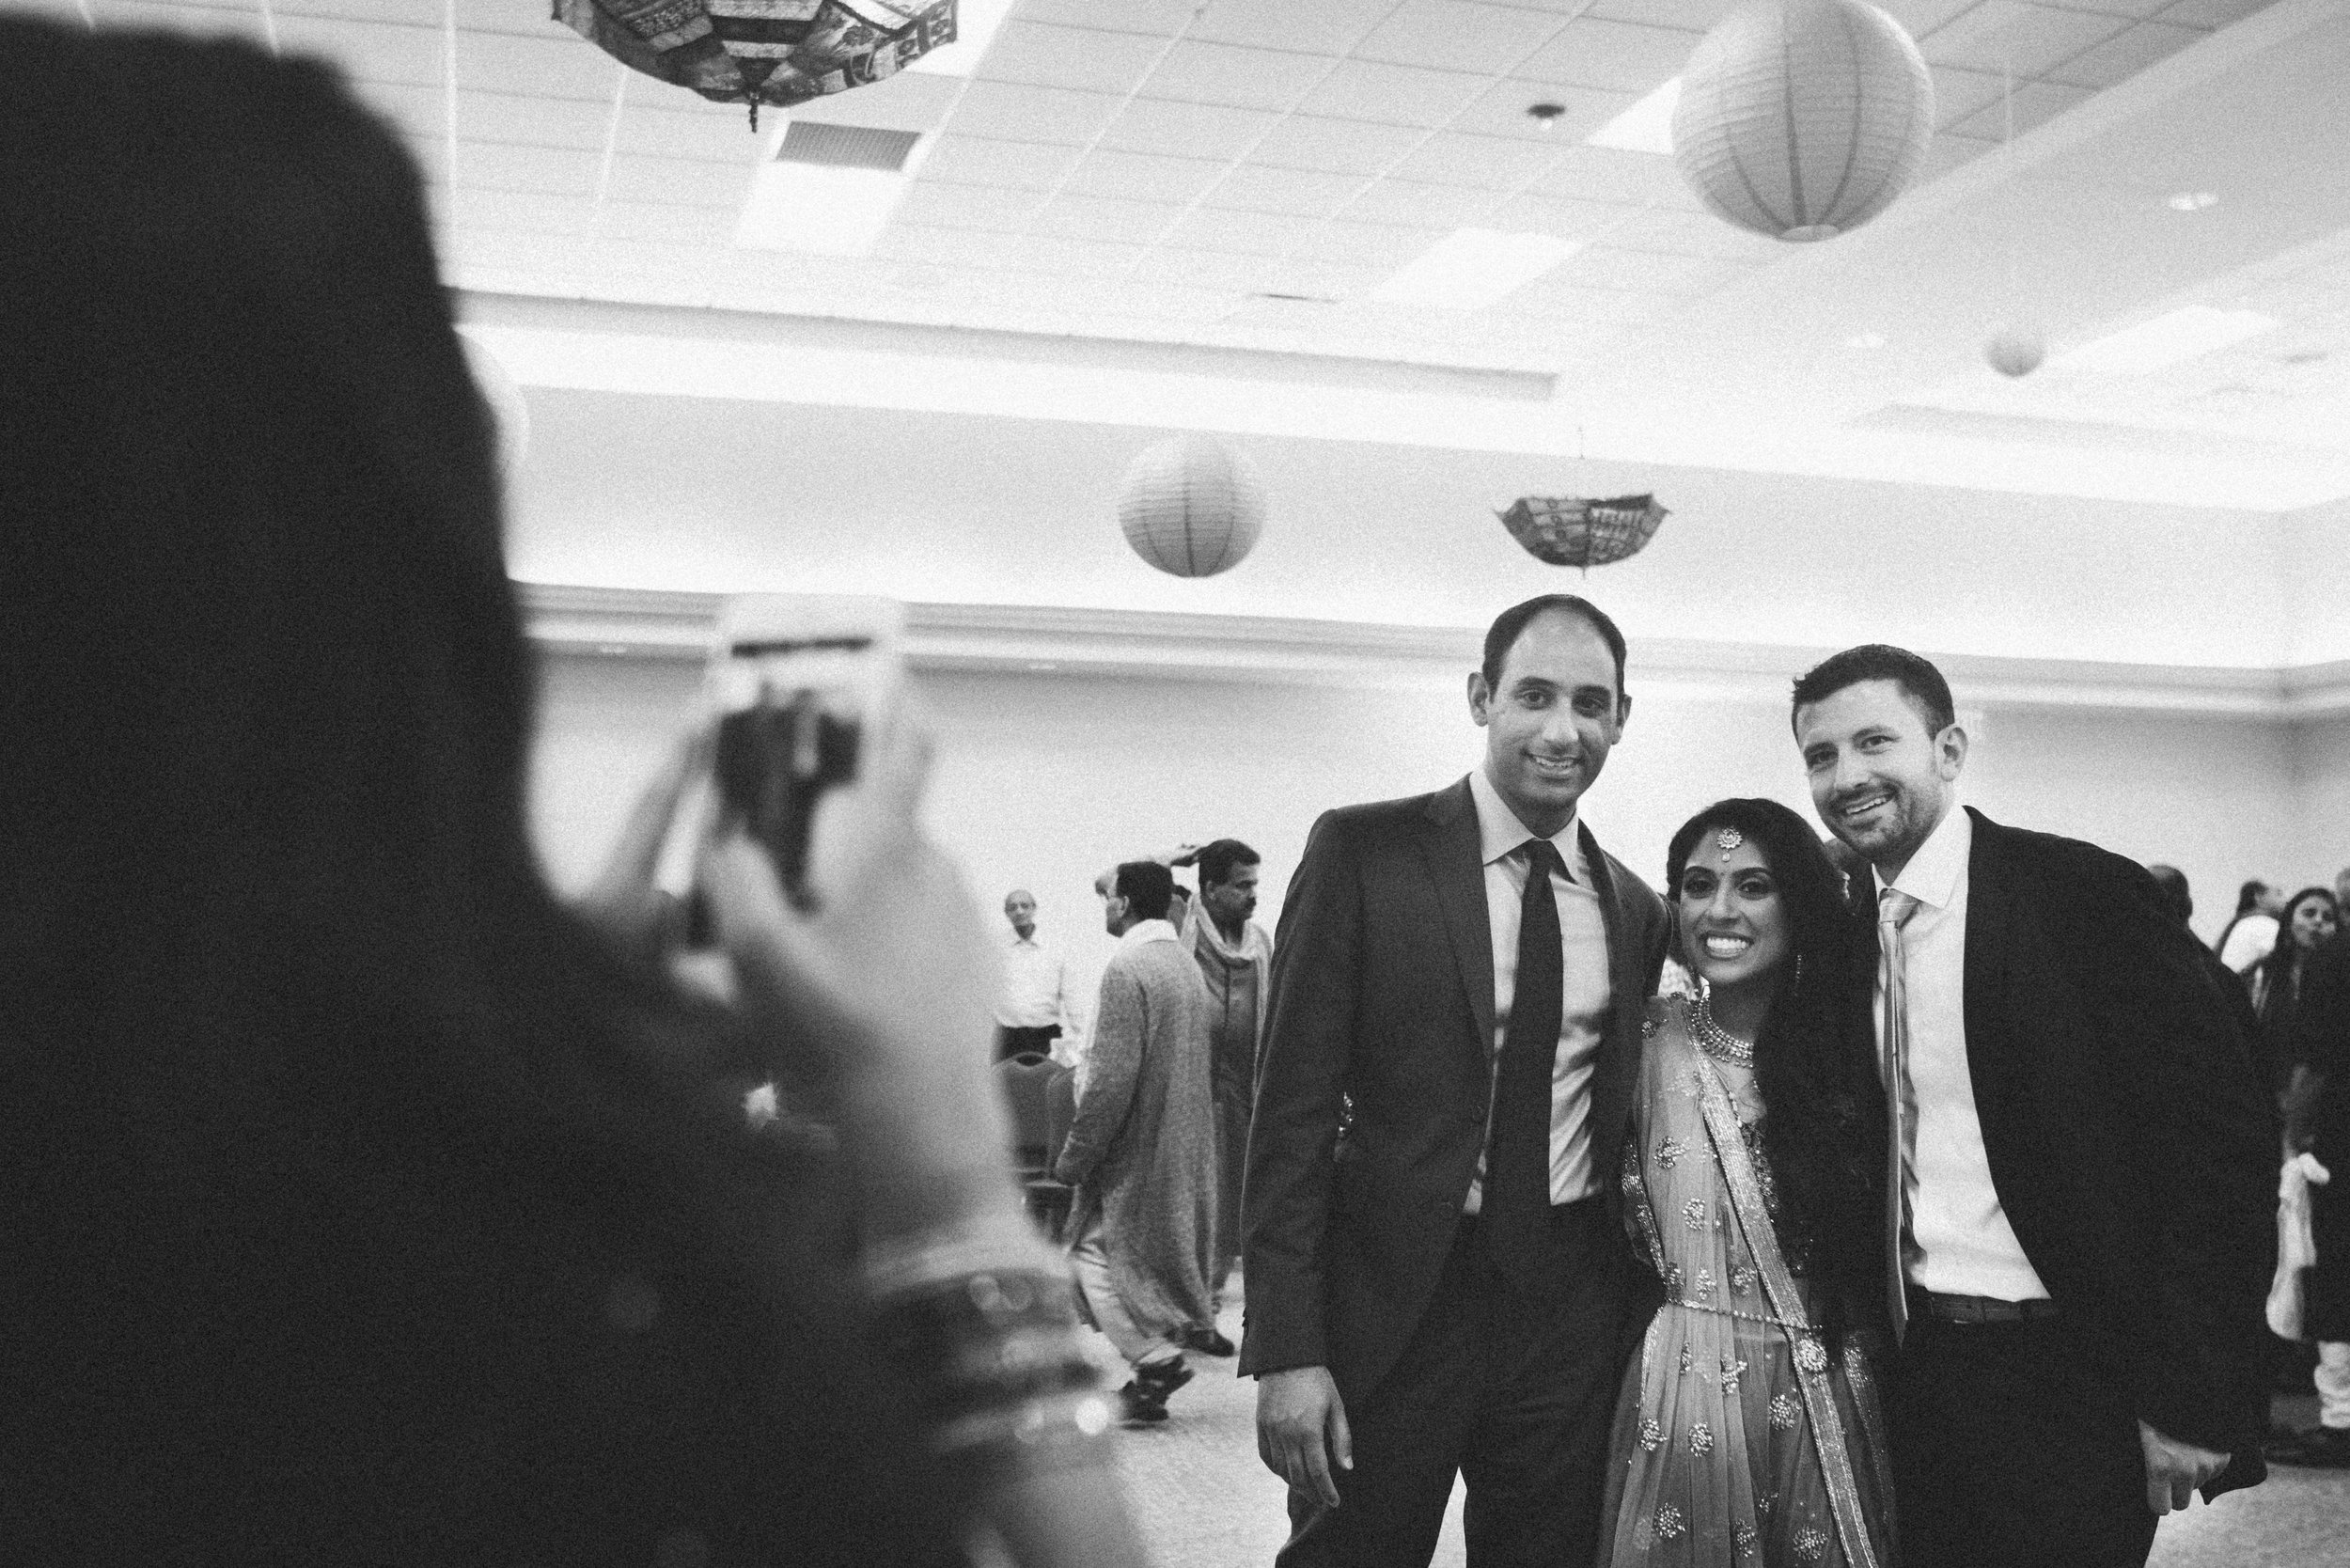 North-Carolina-Wedding-West-Michigan-Cinematographers-Cinematography-Photographer-Photography-Novi-West-Michigan-Grand-Rapids-Indian-Wedding